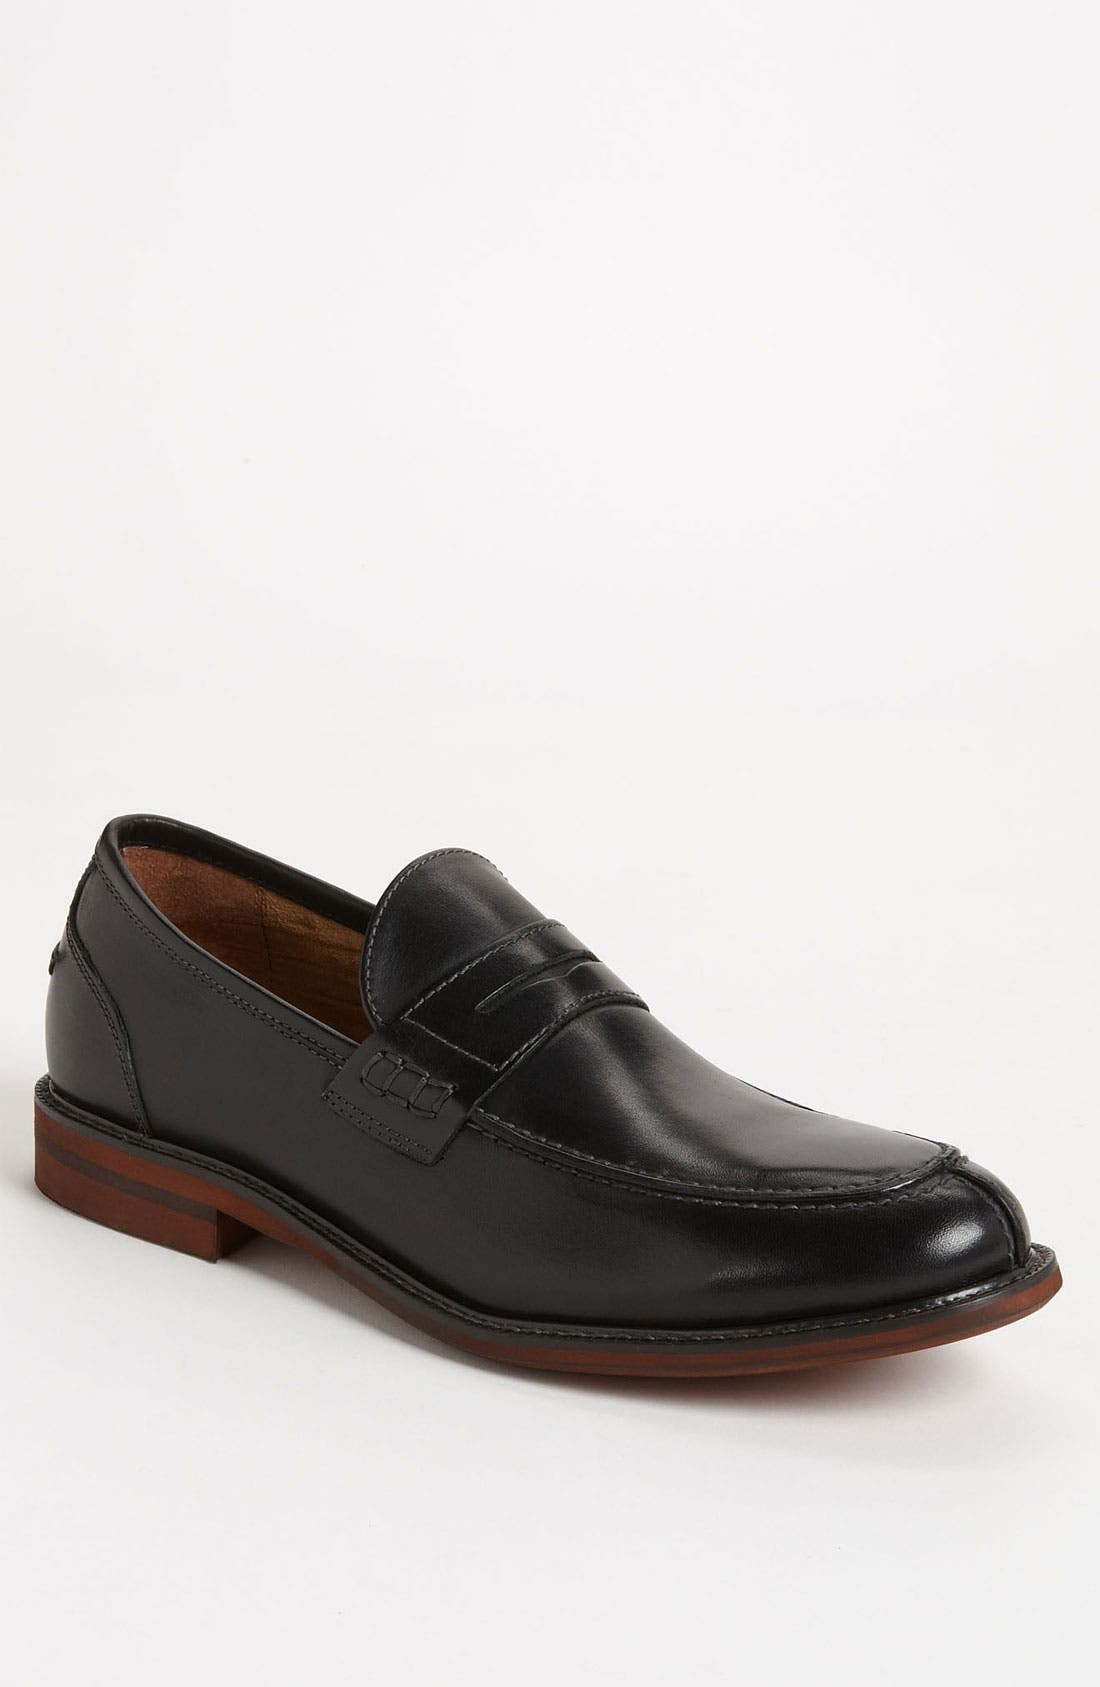 Alternate Image 1 Selected - Florsheim 'Doon' Penny Loafer (Online Only)